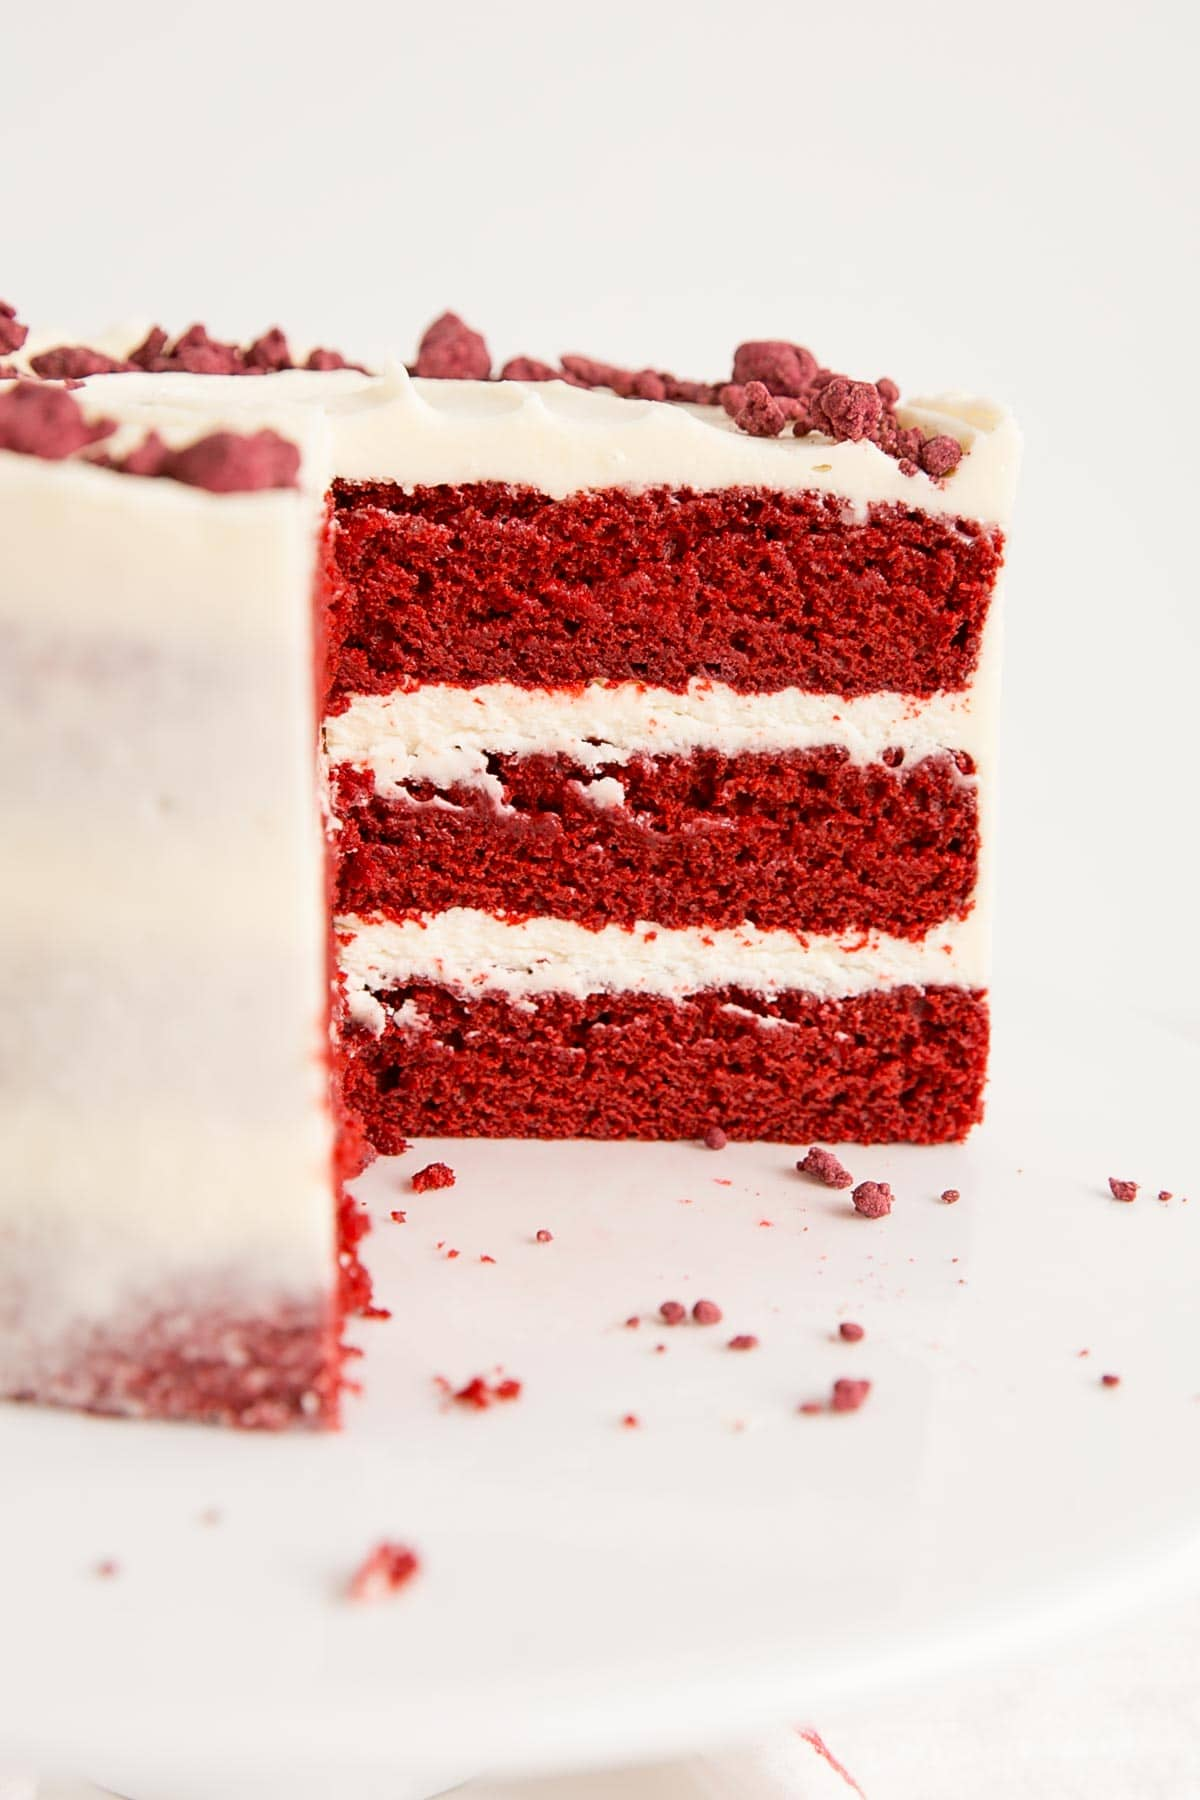 Cross-section of a three layer red velvet cake with cream cheese frosting.